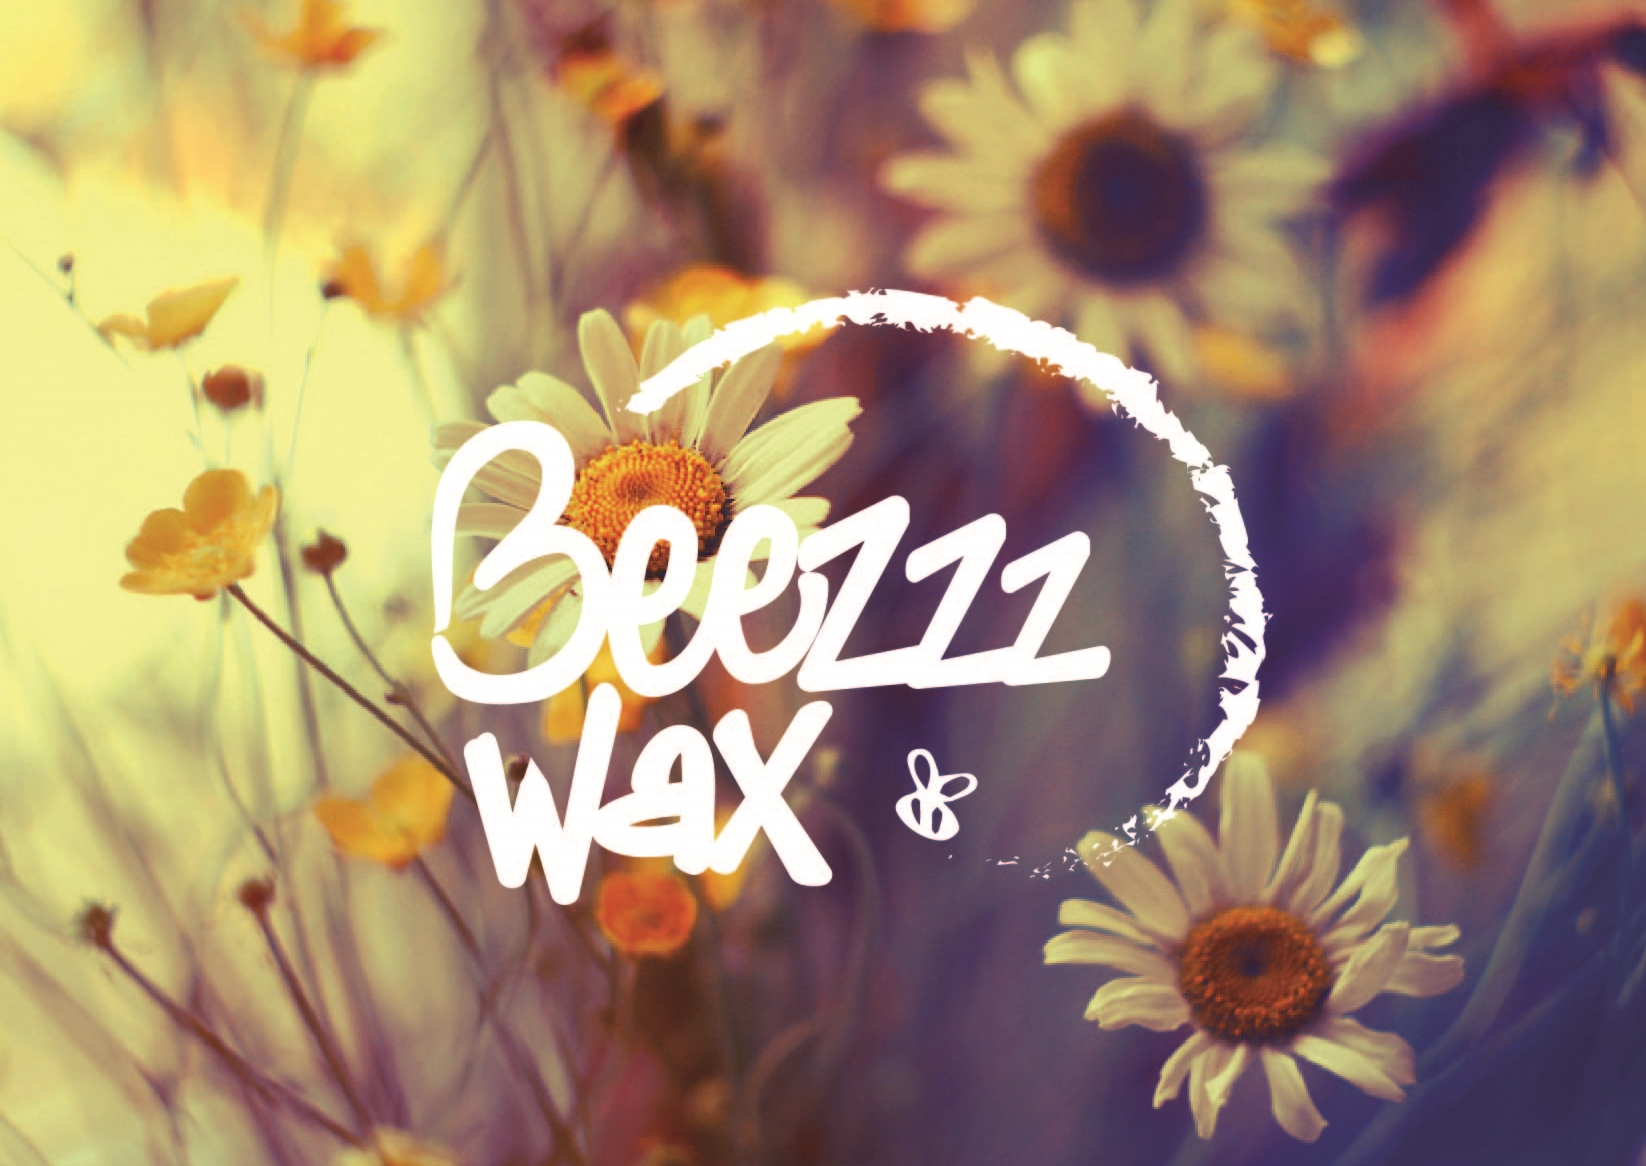 BEEZZZ WAX | Biological body products